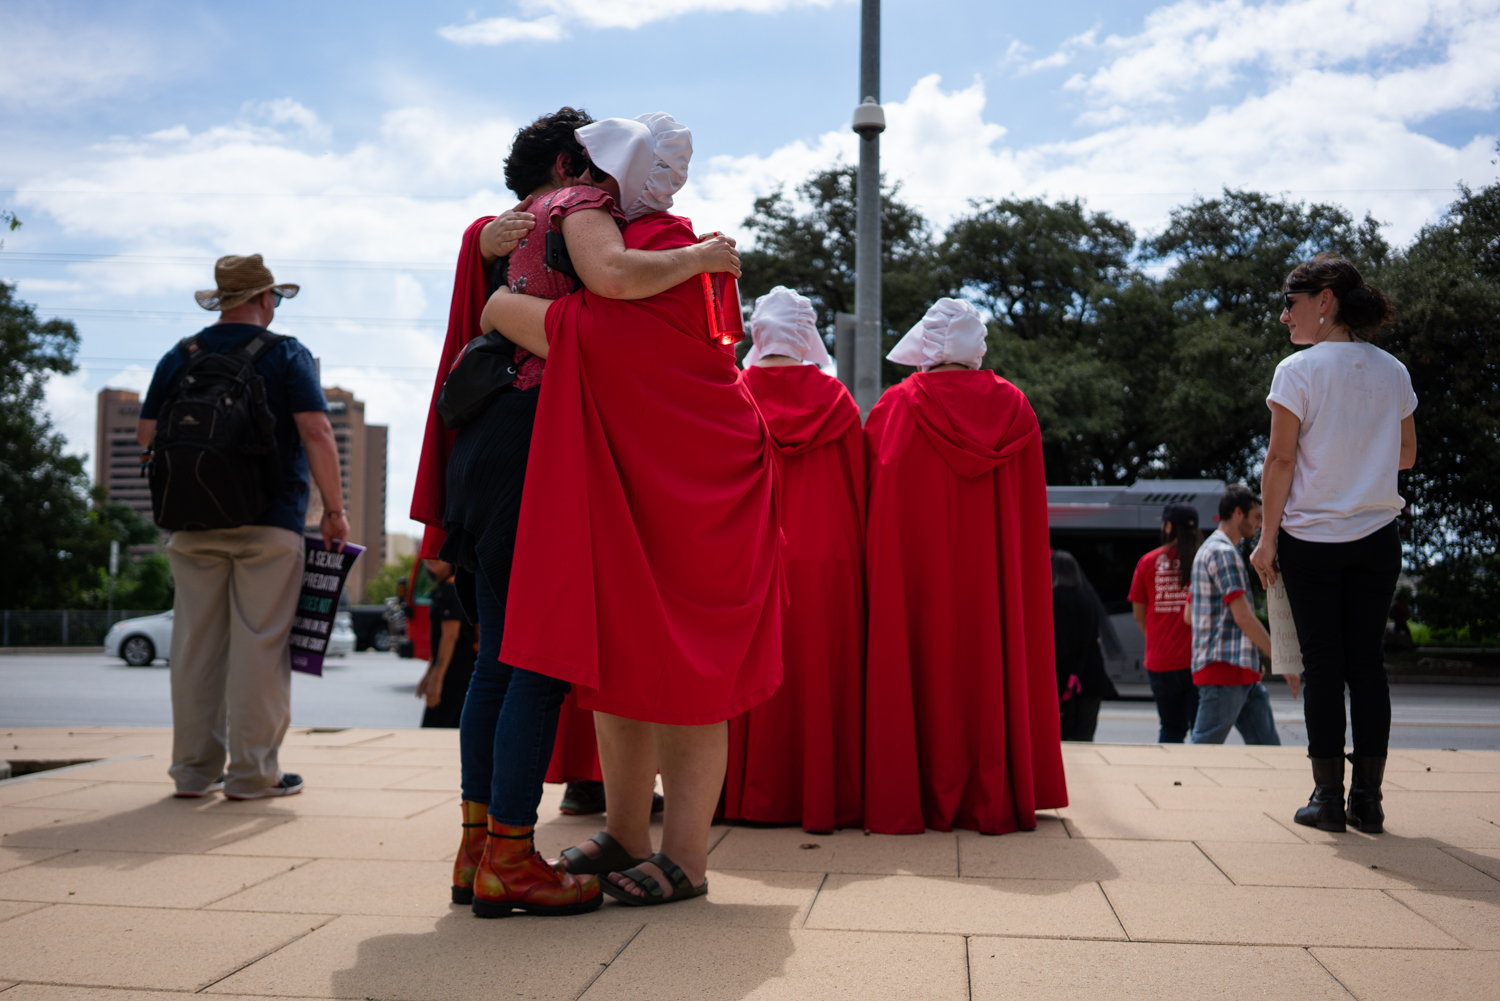 A passerby hugs a member of the Texas Handmaids after a march from the Texas State Capitol to Austin City Hall protesting the confirmation of Brett Kavanaugh to the U.S. Supreme Court. Oct. 6, 2018.